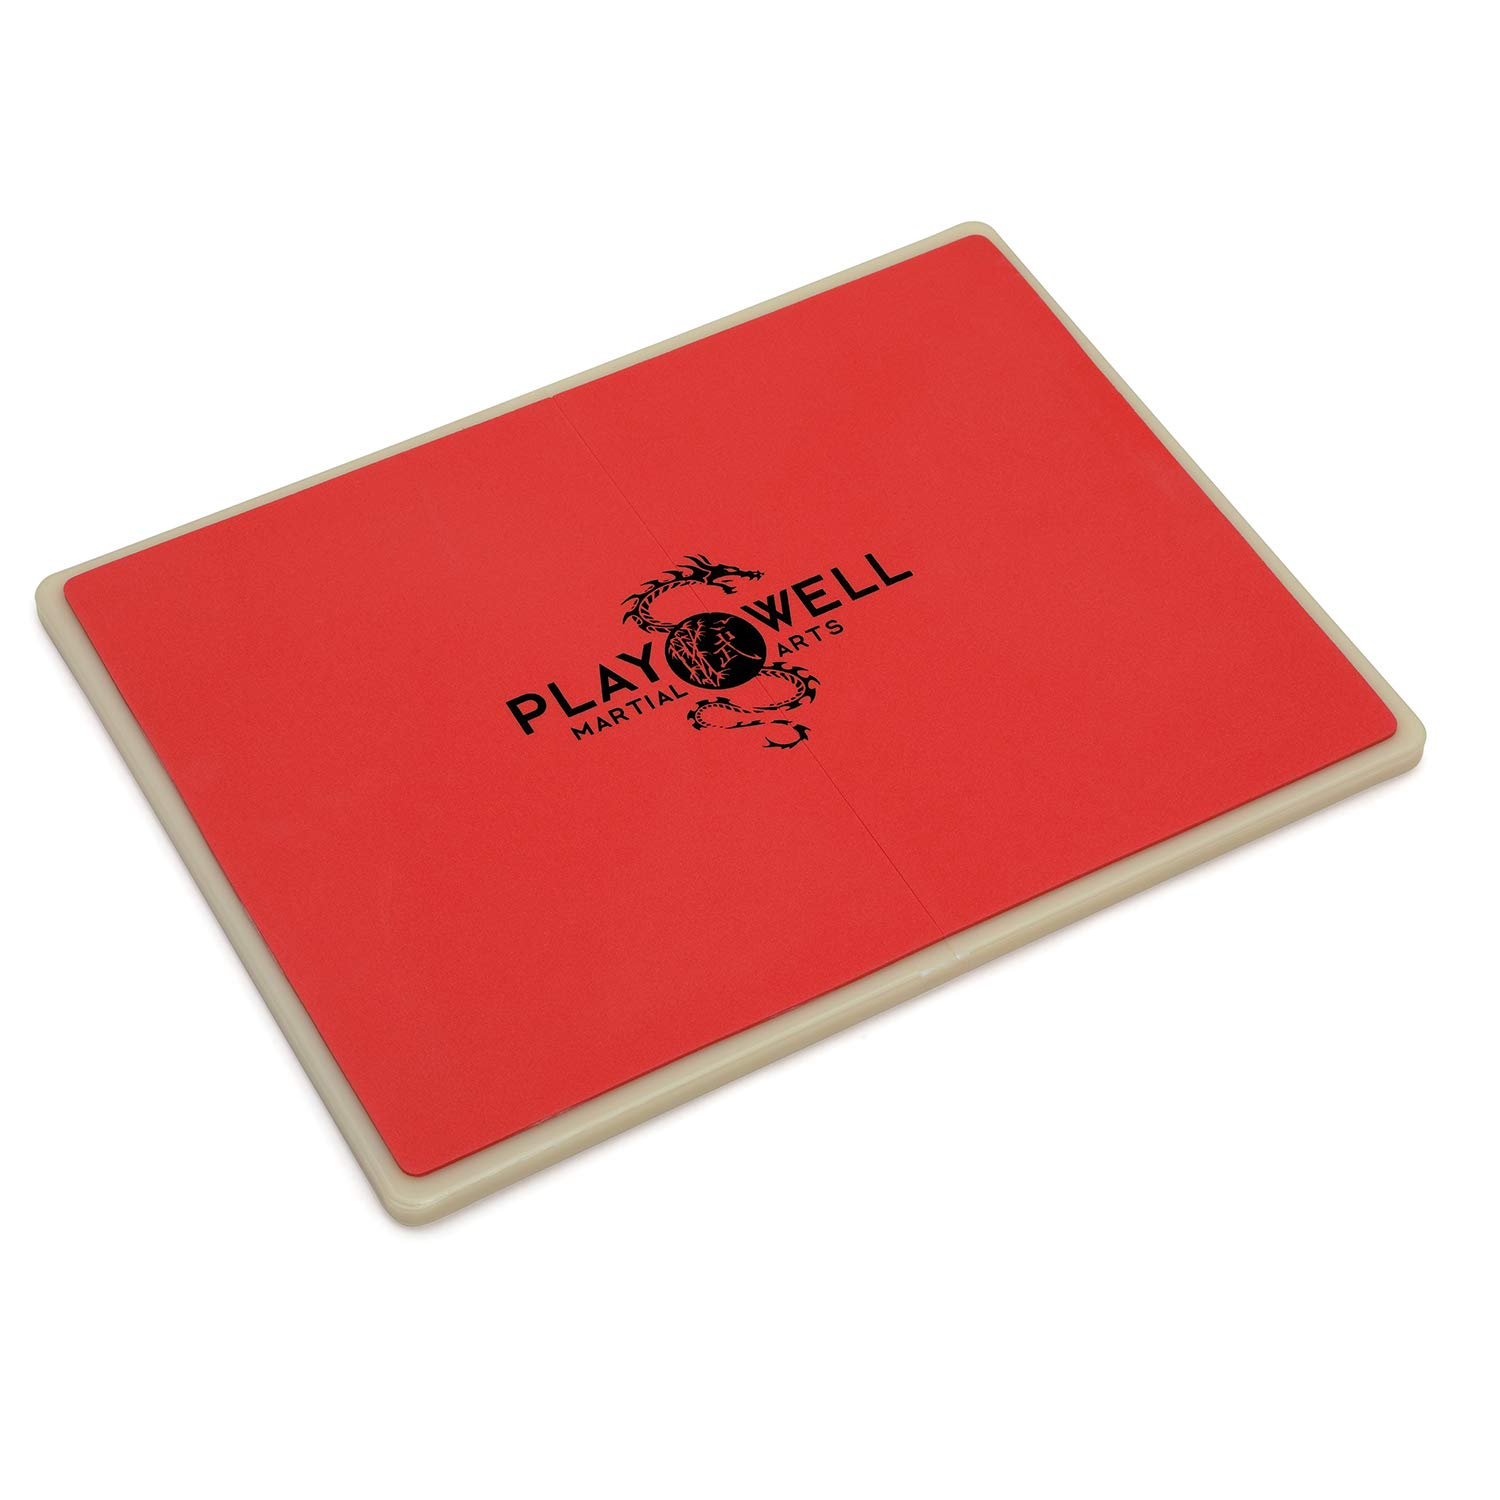 Playwell Martial Arts Childrens Break/Smash Rebreakable Boards - Red by Playwell